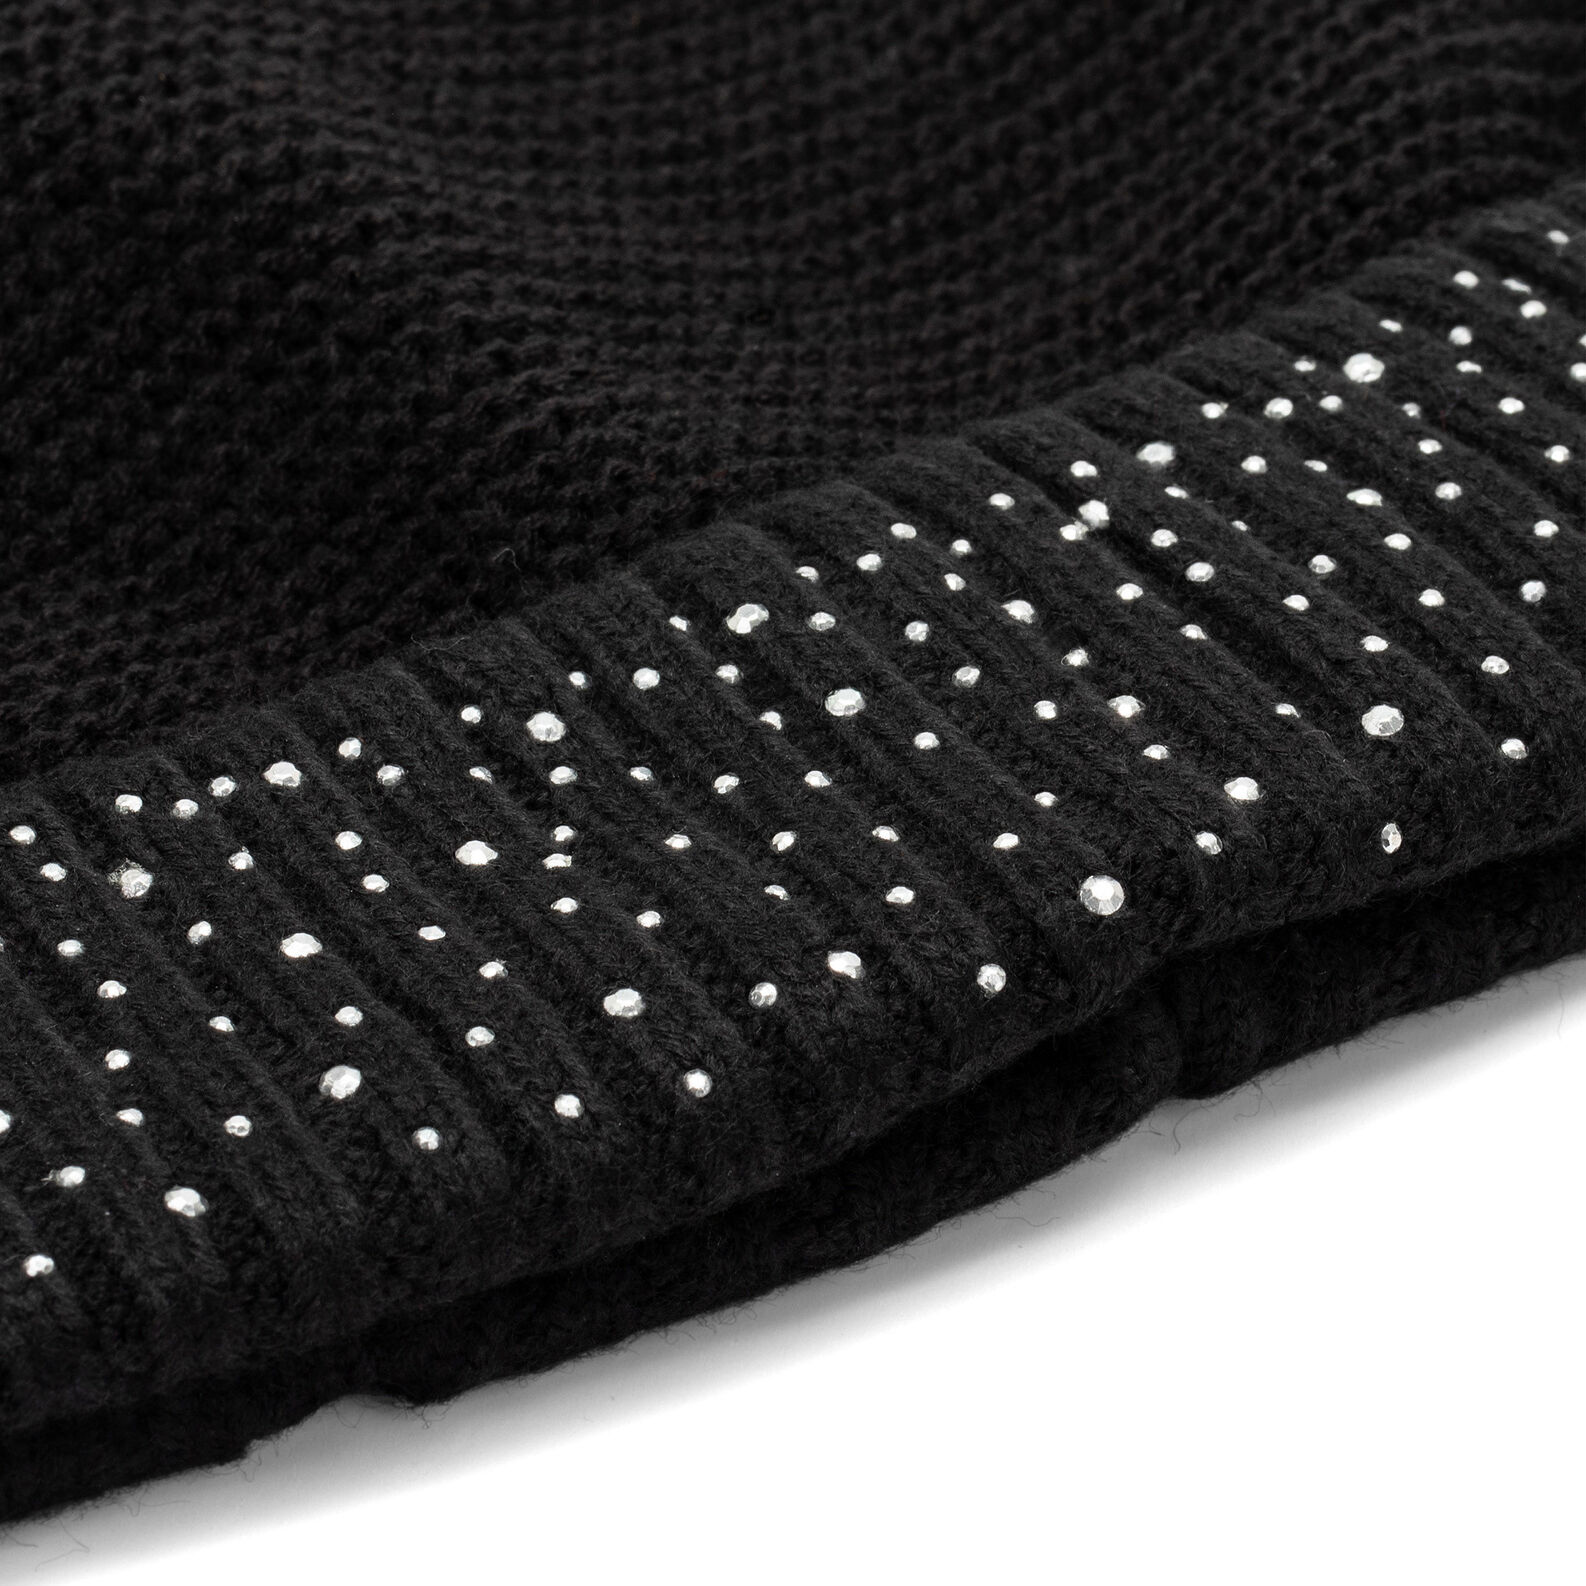 Koan hat with rhinestones